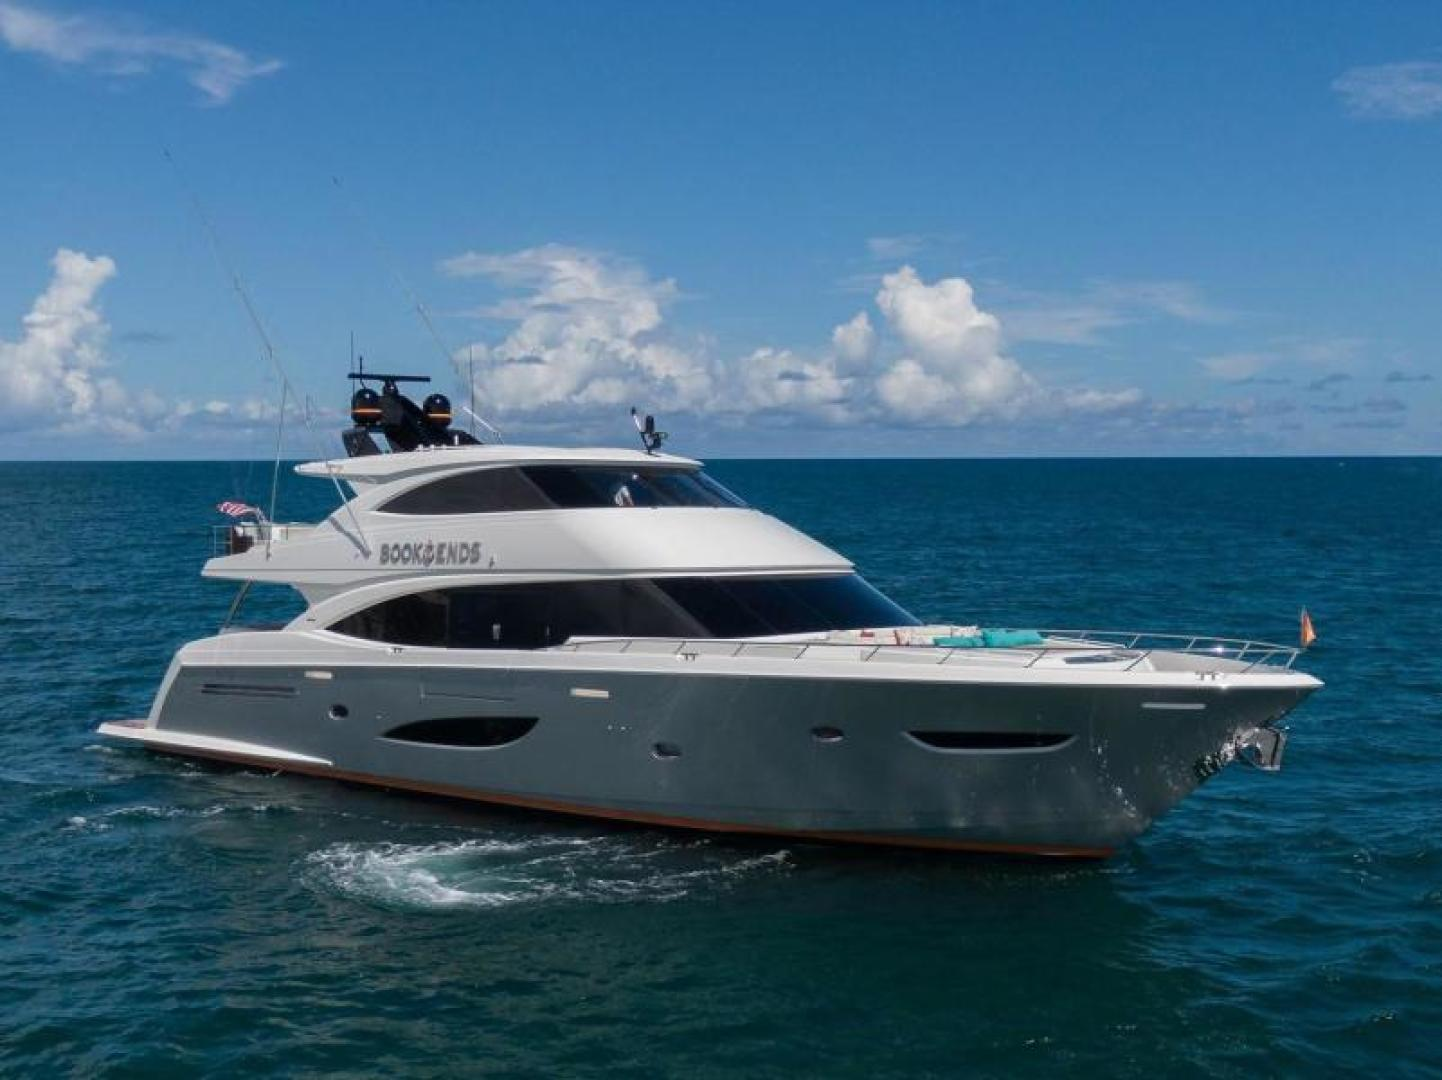 Viking-Motoryacht Enclosed Flybridge 2018-BOOK ENDS Fort Lauderdale-Florida-United States-BOOK ENDS-1470668 | Thumbnail